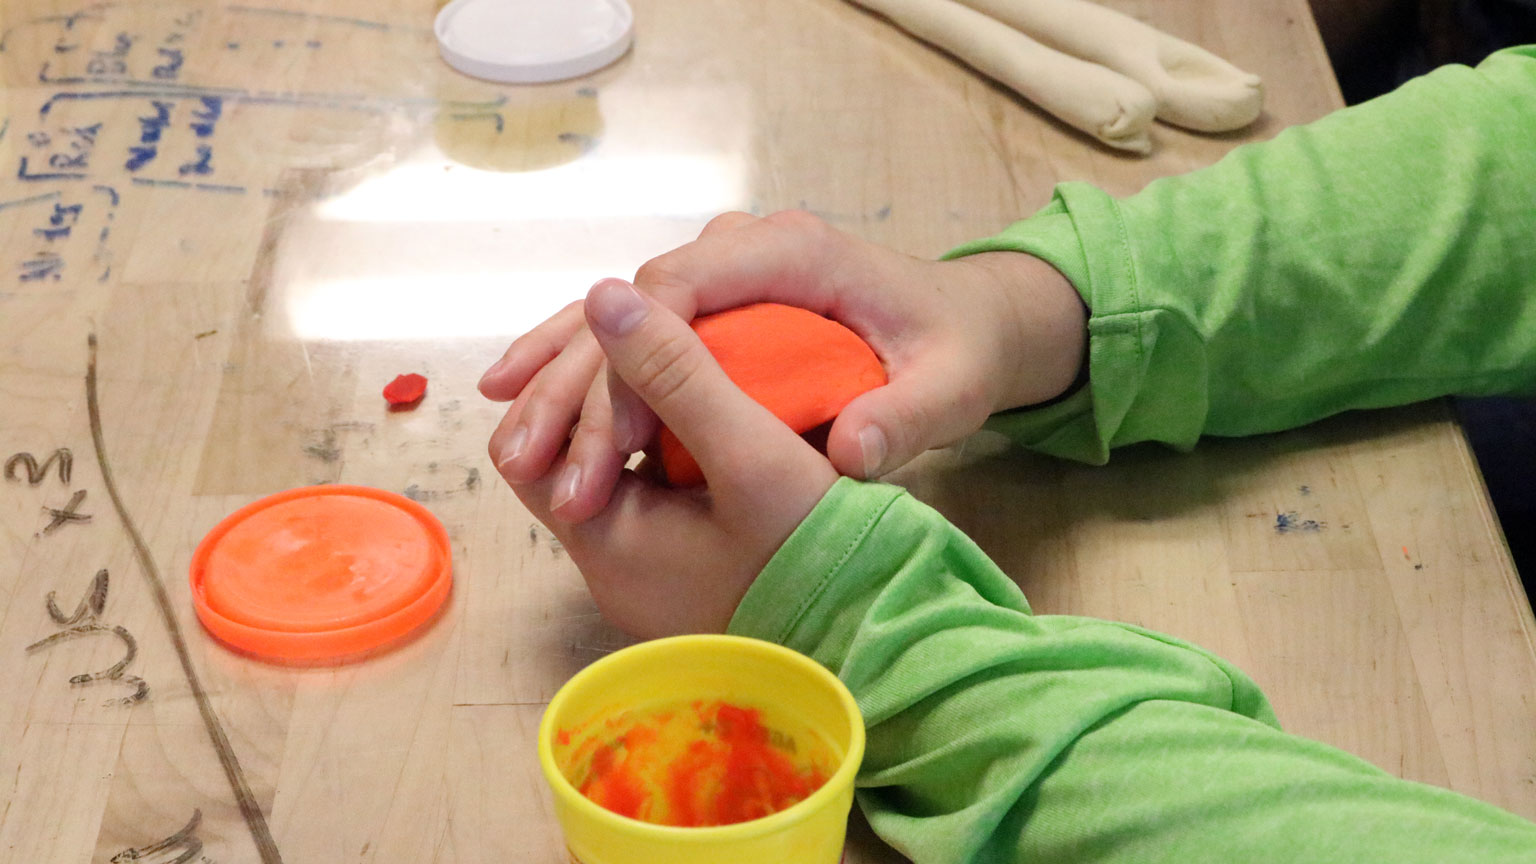 Hands mold dough into prototype utensil during a Design Bloc workshop on empathy for the user.